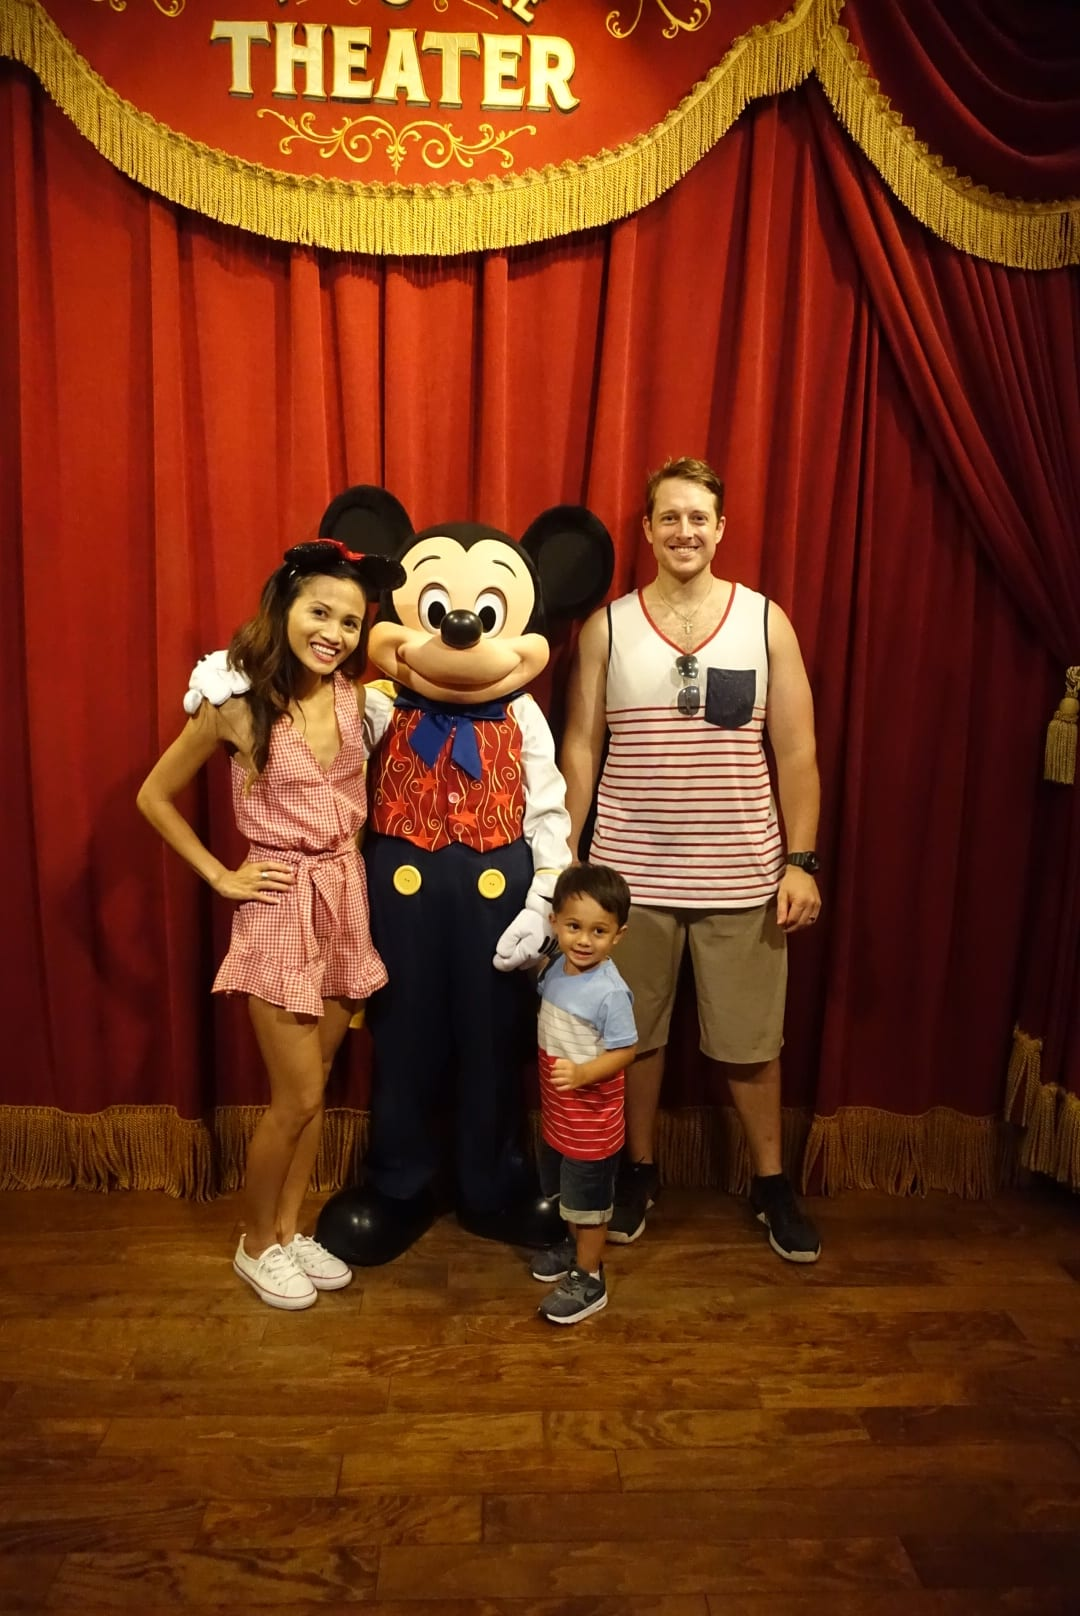 DISNEY WITH A TODDLER, TIPS FOR FAMILIES VISITING DISNEY, DISNEY WORLD, WHAT TO DO IN DISNEY WORLD, VISITING DISNEY WORLD, FIRST TIME IN DISNEY WORLD, VISITING DISNEY WORLD WITH A TODDLER, Mickey Mouse, Mickey Mouse THEATRE